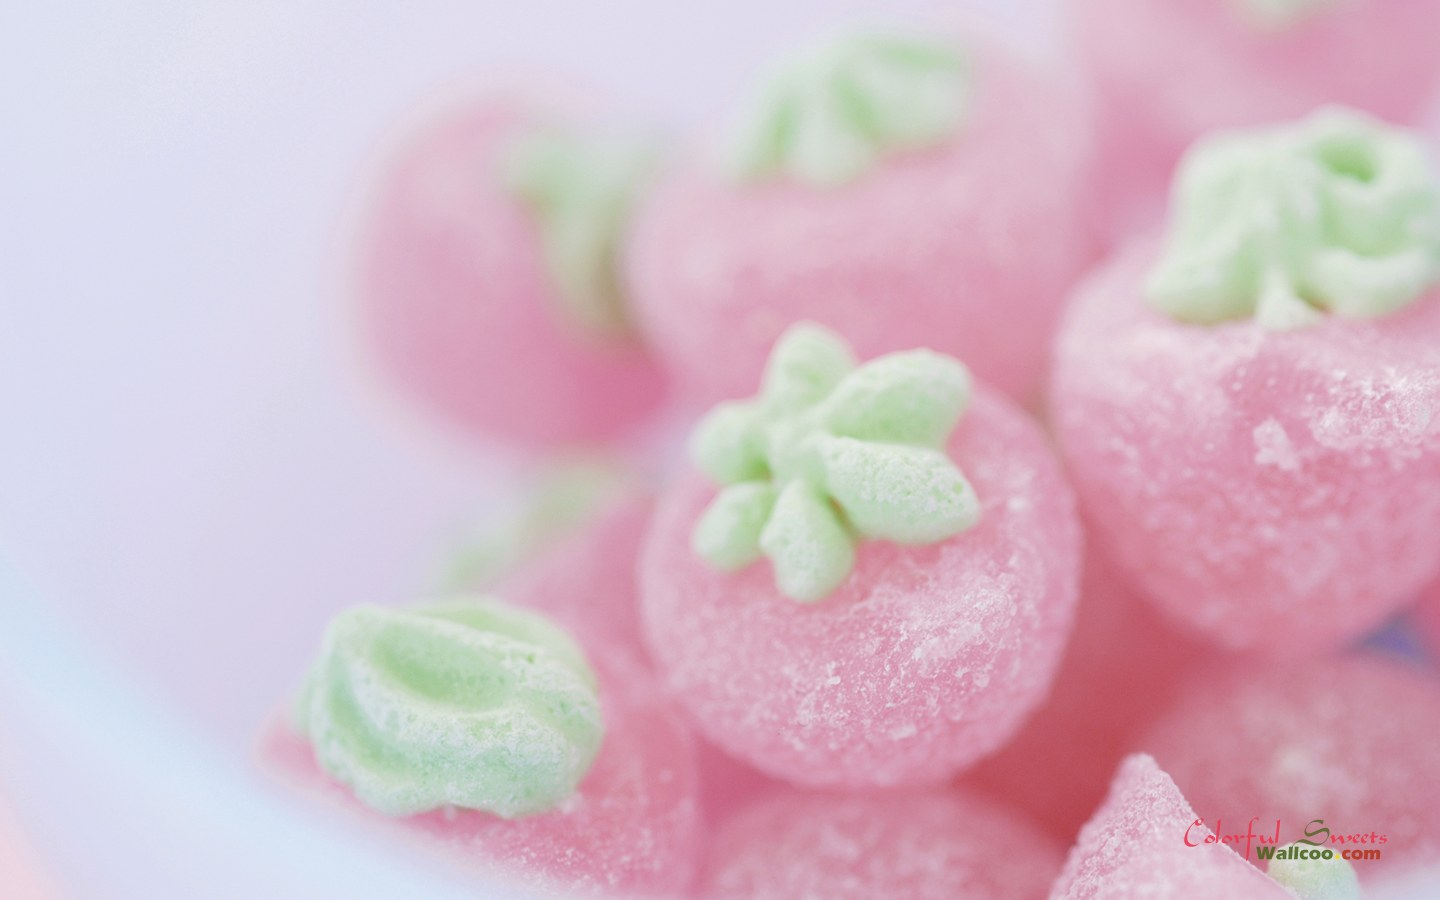 Sweets and candies, romantic sweet candy 1440*900 no.23 wallpaper